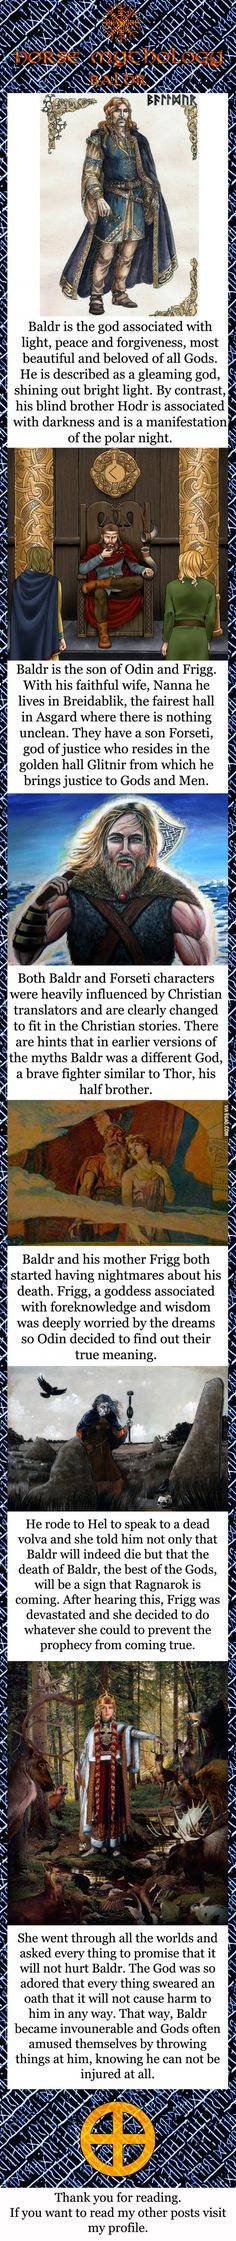 Norse mythology - Baldr Doesn't include the rest of the story including Loke and his dart of mistletoe